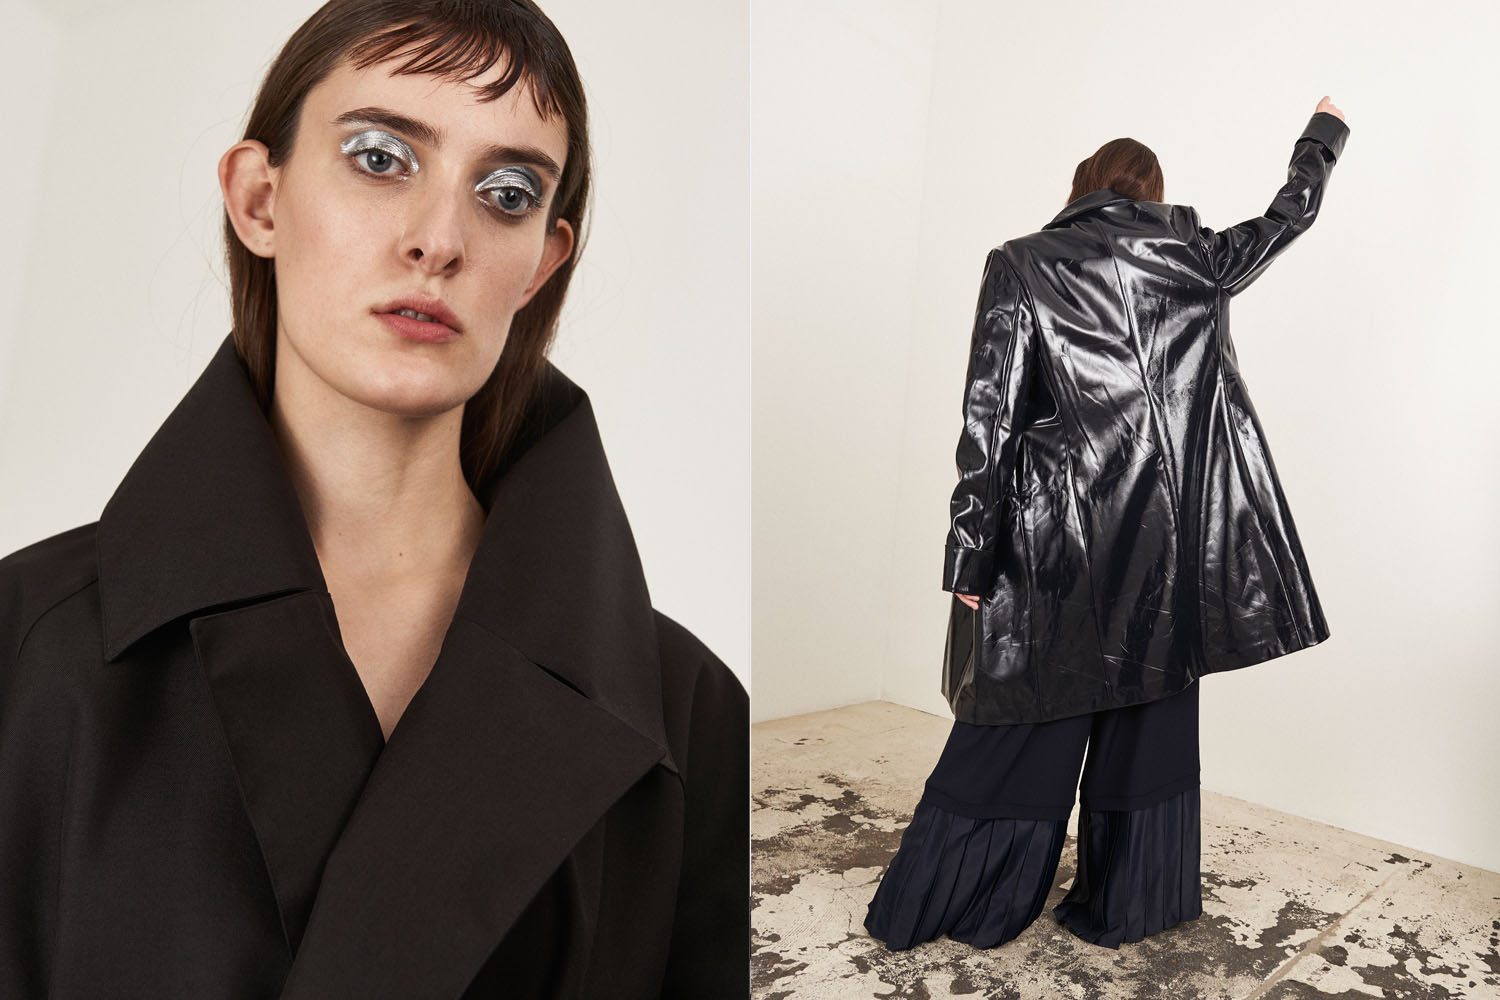 Left: Coat by Isabel Vollrath. Right: coat by William Fan, shirt by Kiomi, trousers by Nobi Talai.